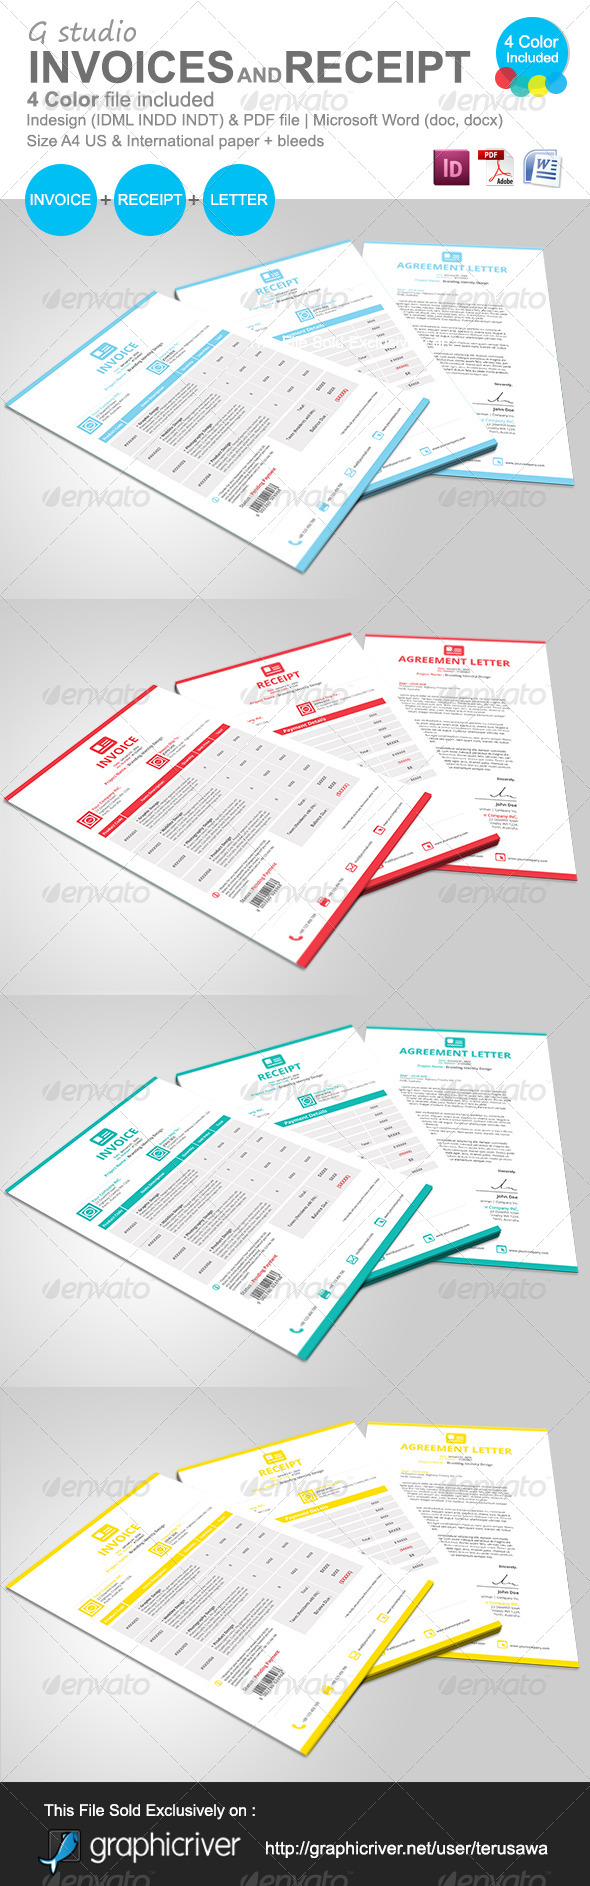 Gstudio Invoices And Receipt Template - Proposals & Invoices Stationery